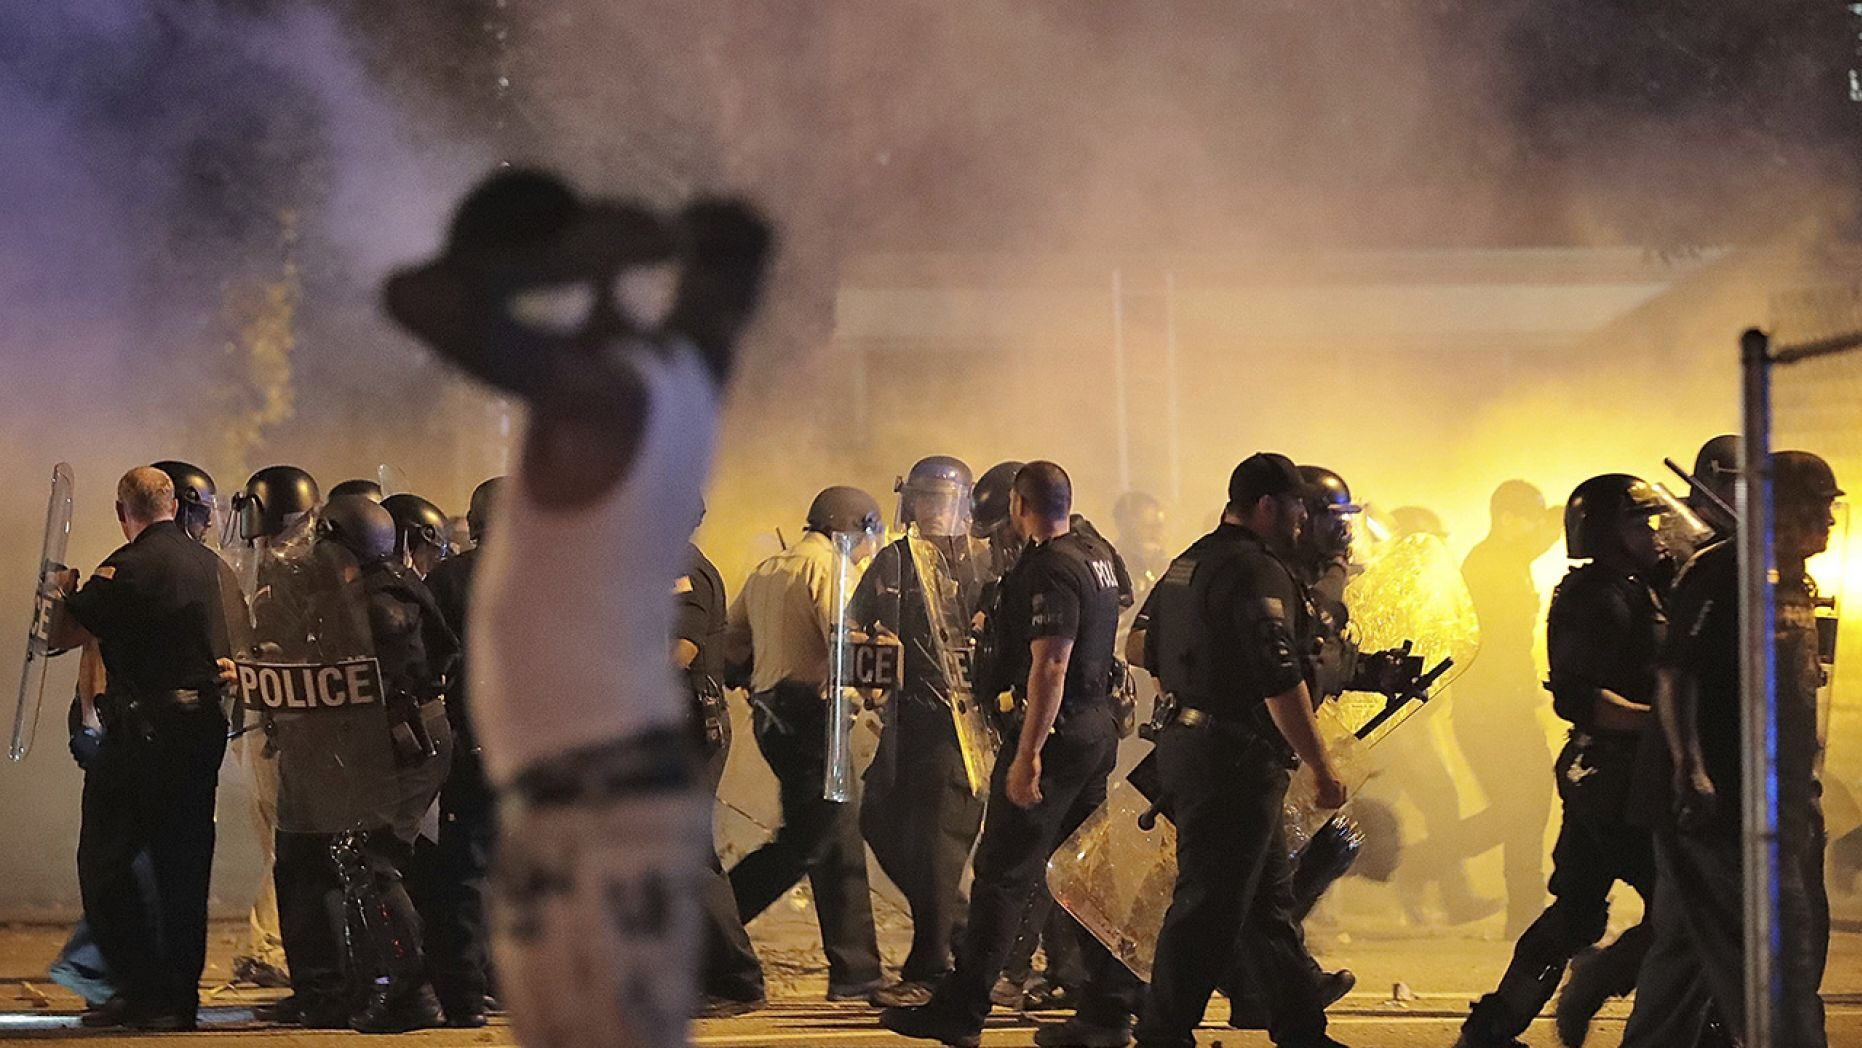 Police retreat under a cloud of tear gas as protesters disperse from the scene of a standoff after Frayser community residents took to the streets in anger against the shooting of a youth by U.S. Marshals earlier in the evening, Wednesday, June 12, 2019, in Memphis, Tenn.